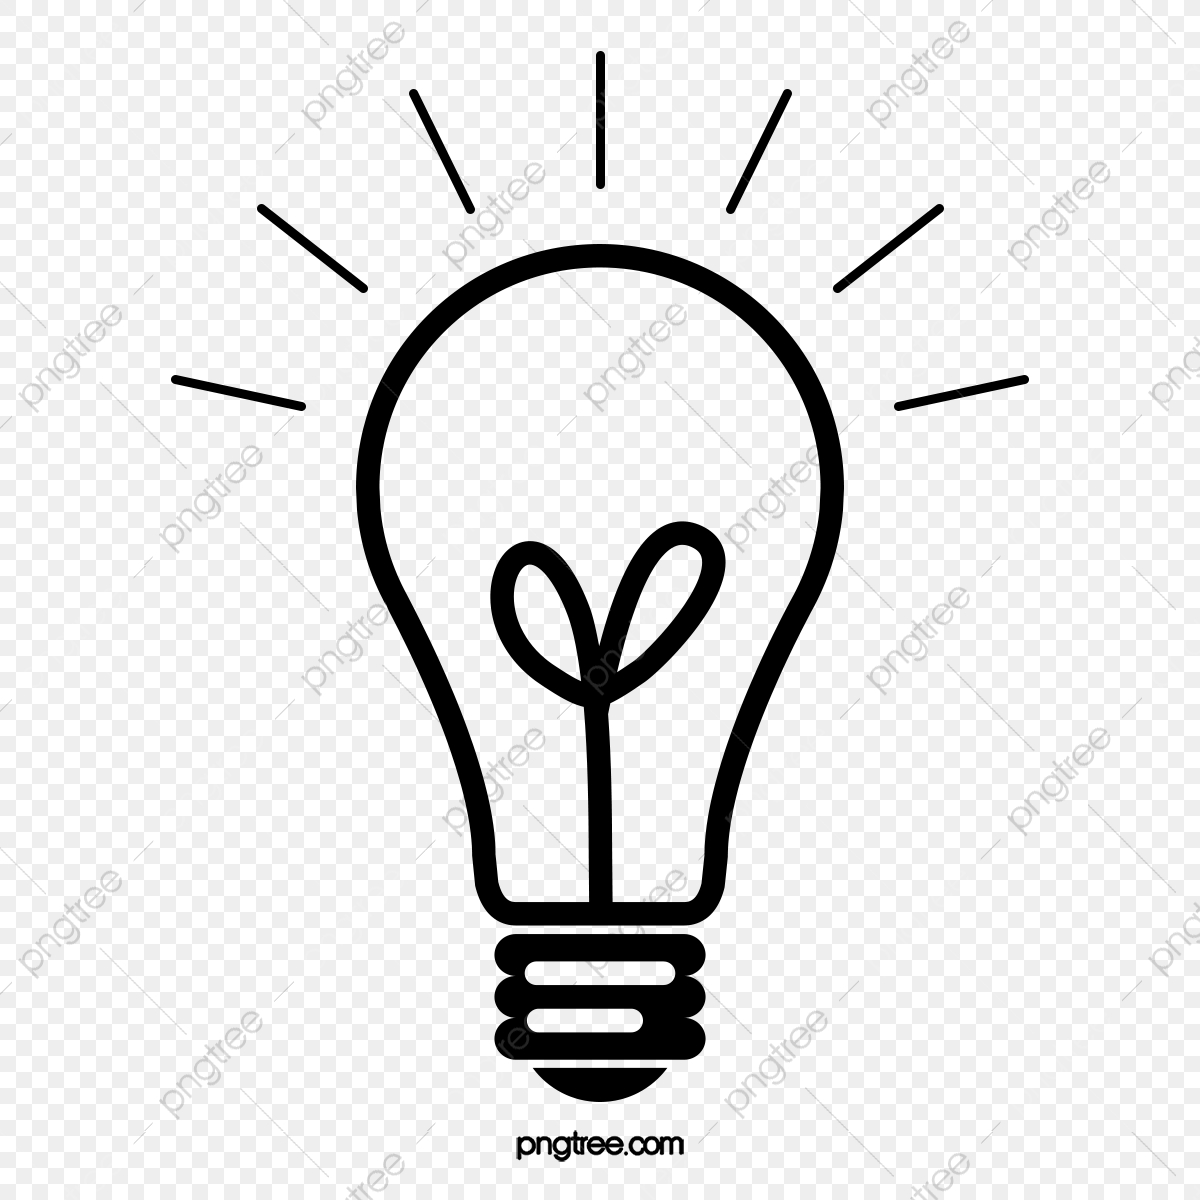 bulb clipart png images vector and psd files free download on pngtree https pngtree com freepng cartoon bulb 3382975 html